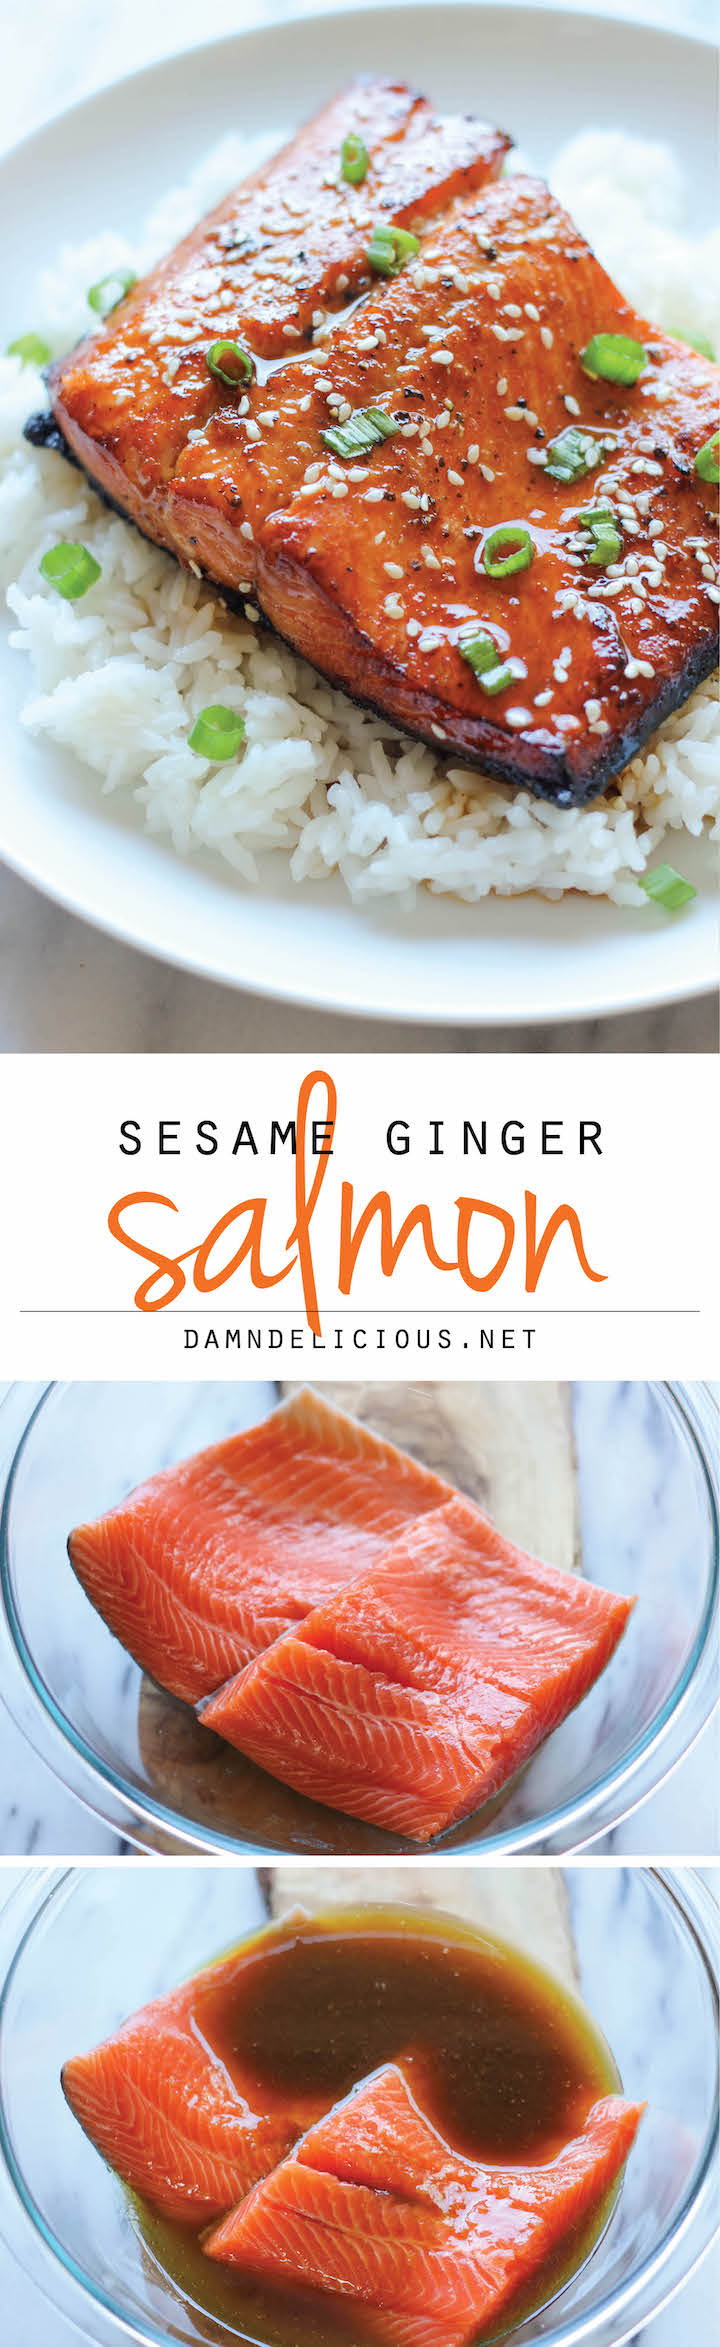 30-minute marinades: Sesame Ginger Salmon 30-minute marinade | Damn Delicious